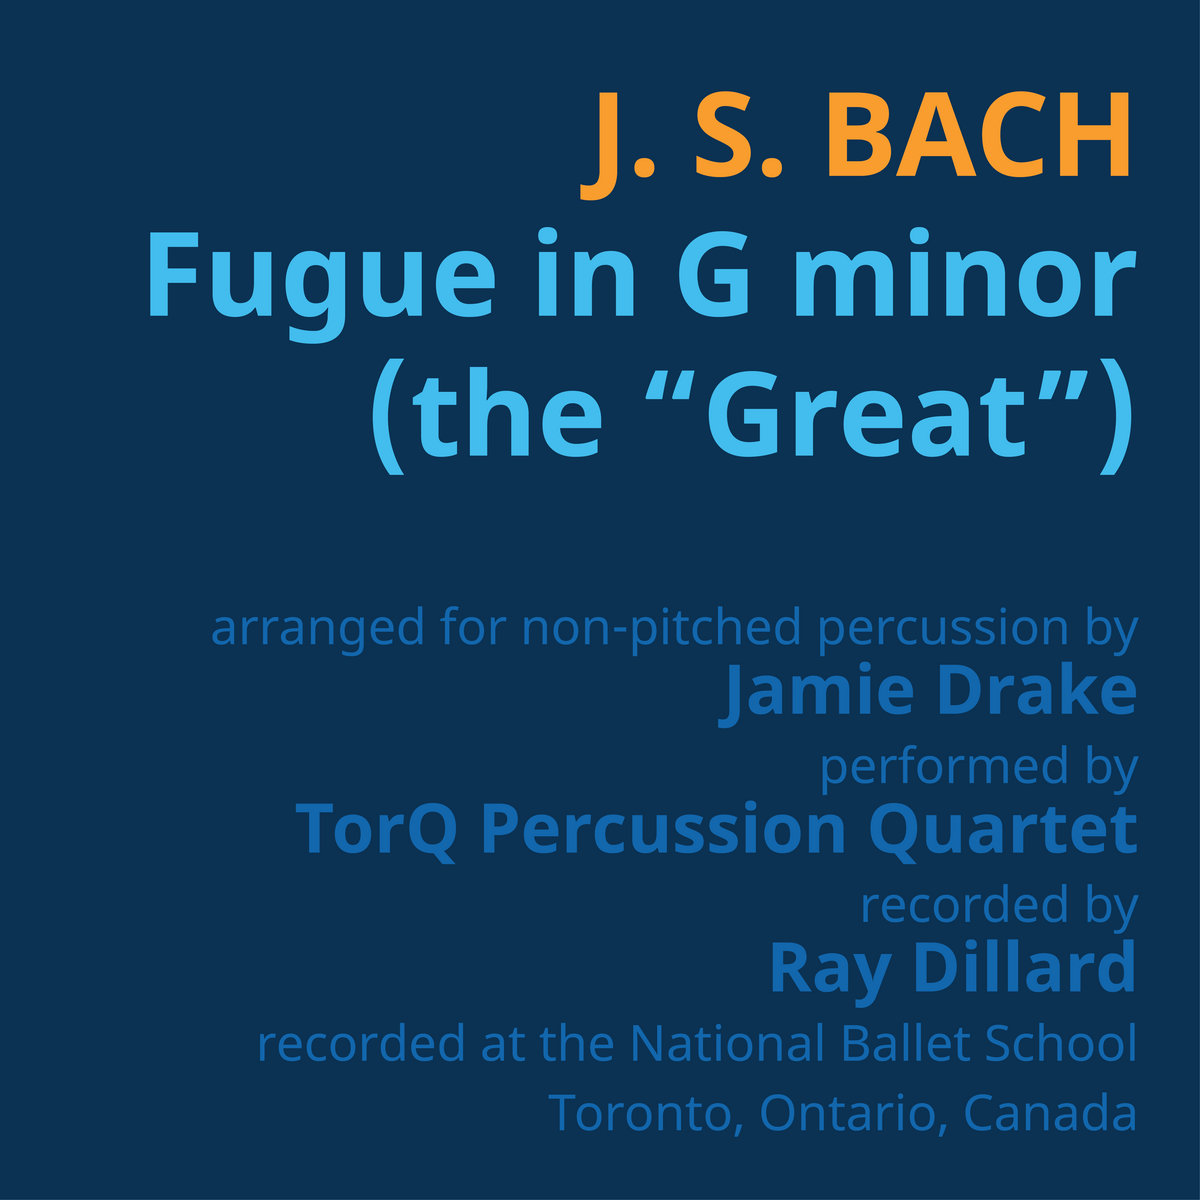 Bach, arr. J. Drake - Fugue in G minor (the Great) for non-pitched percussion by TorQ Percussion Quartet